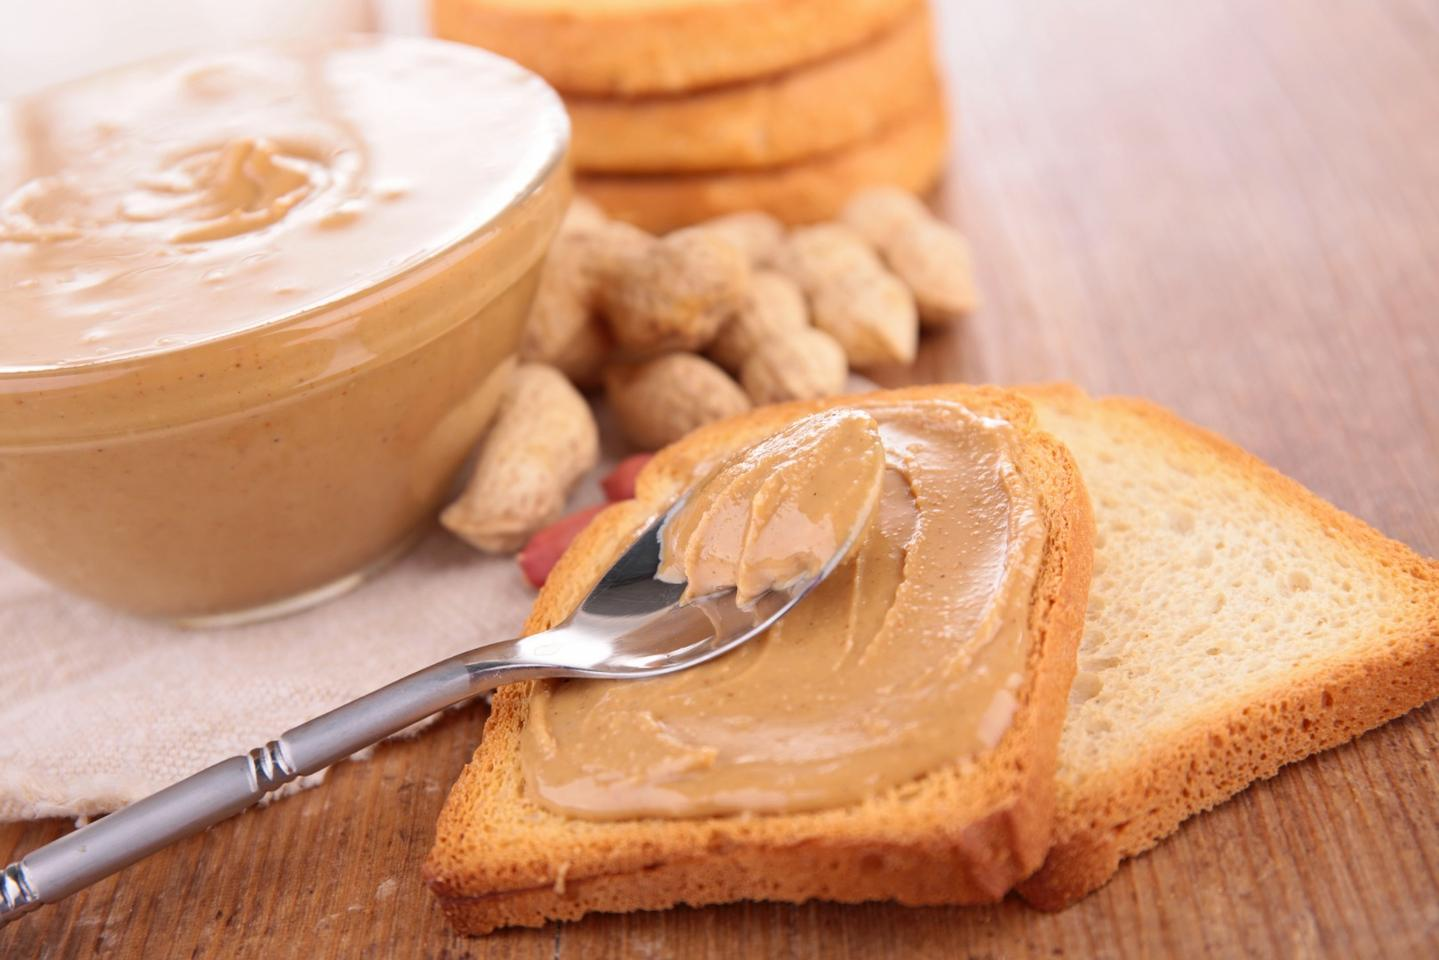 Researchers have cured children of peanut allergies using a probiotic treatment